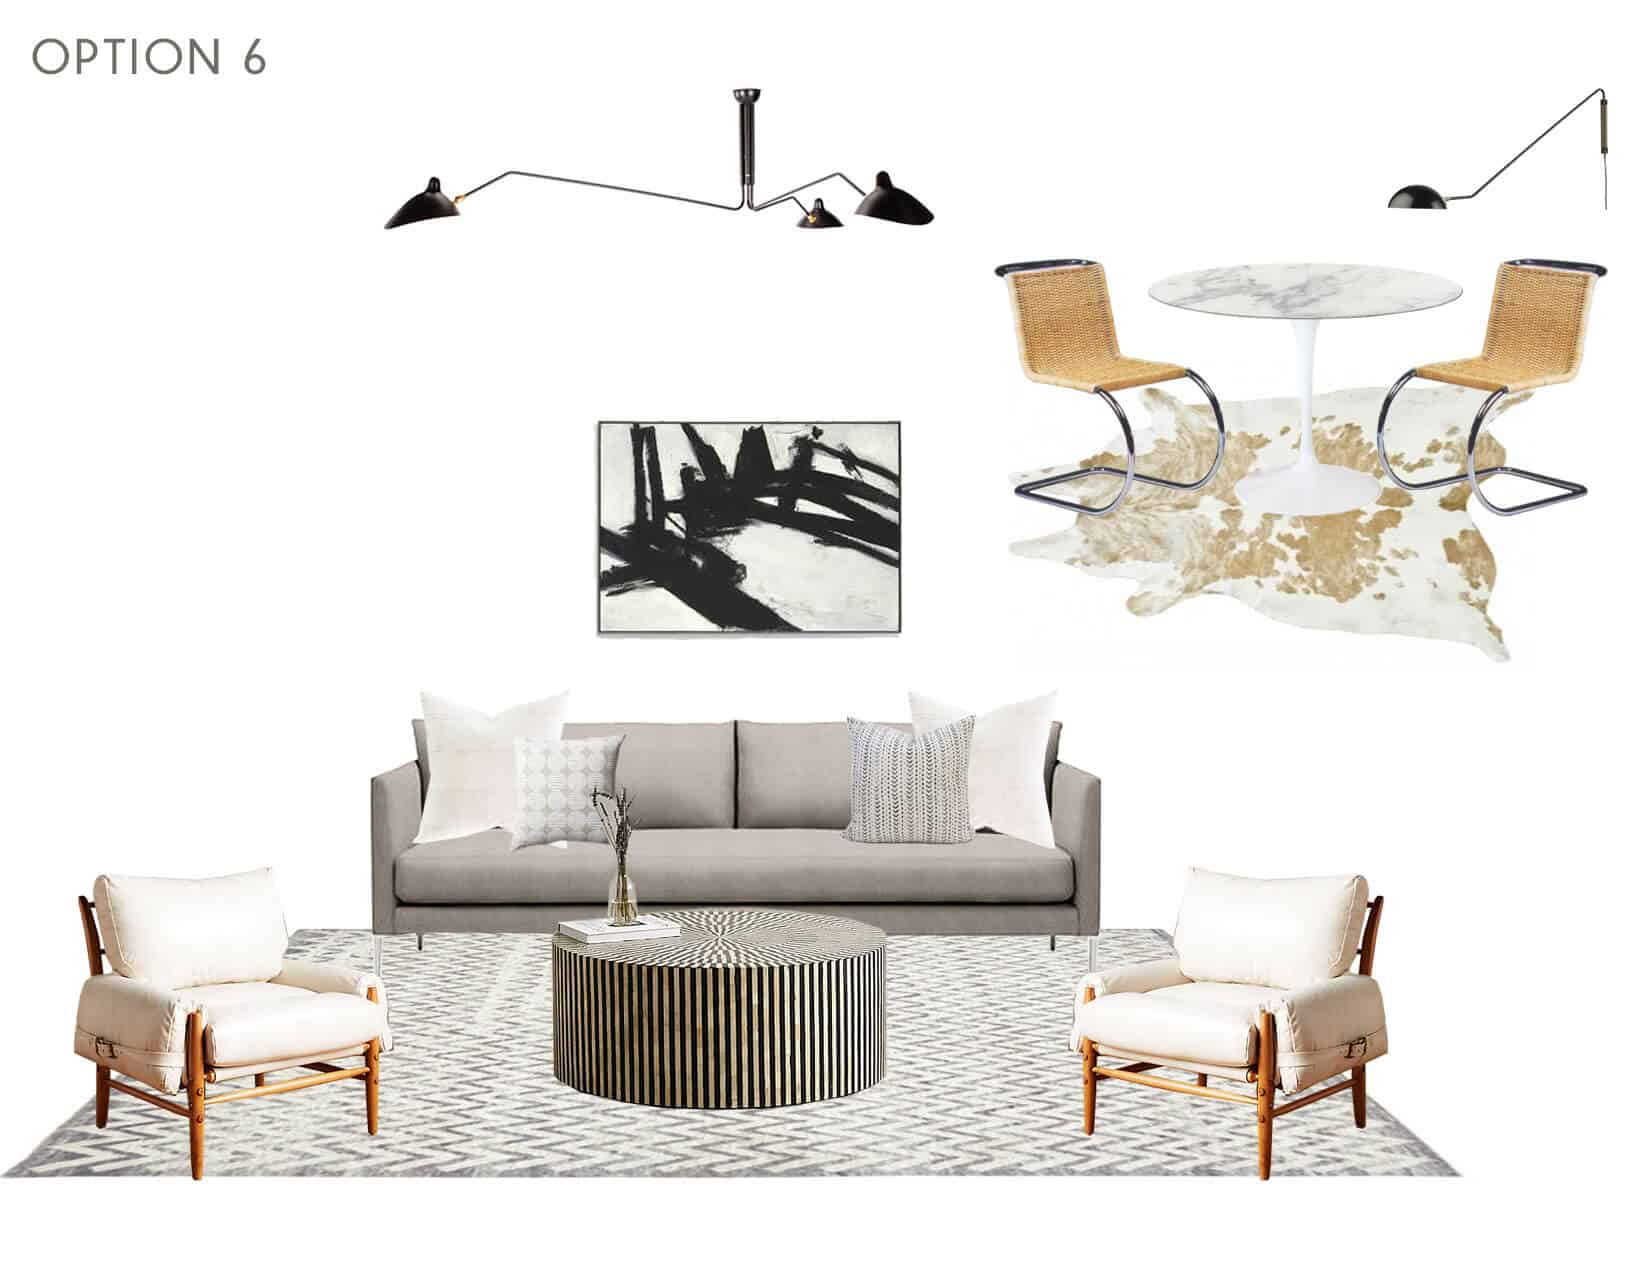 Emily Henderson_Full Design_Sunroom_Introduction_Moodboard_Option 6